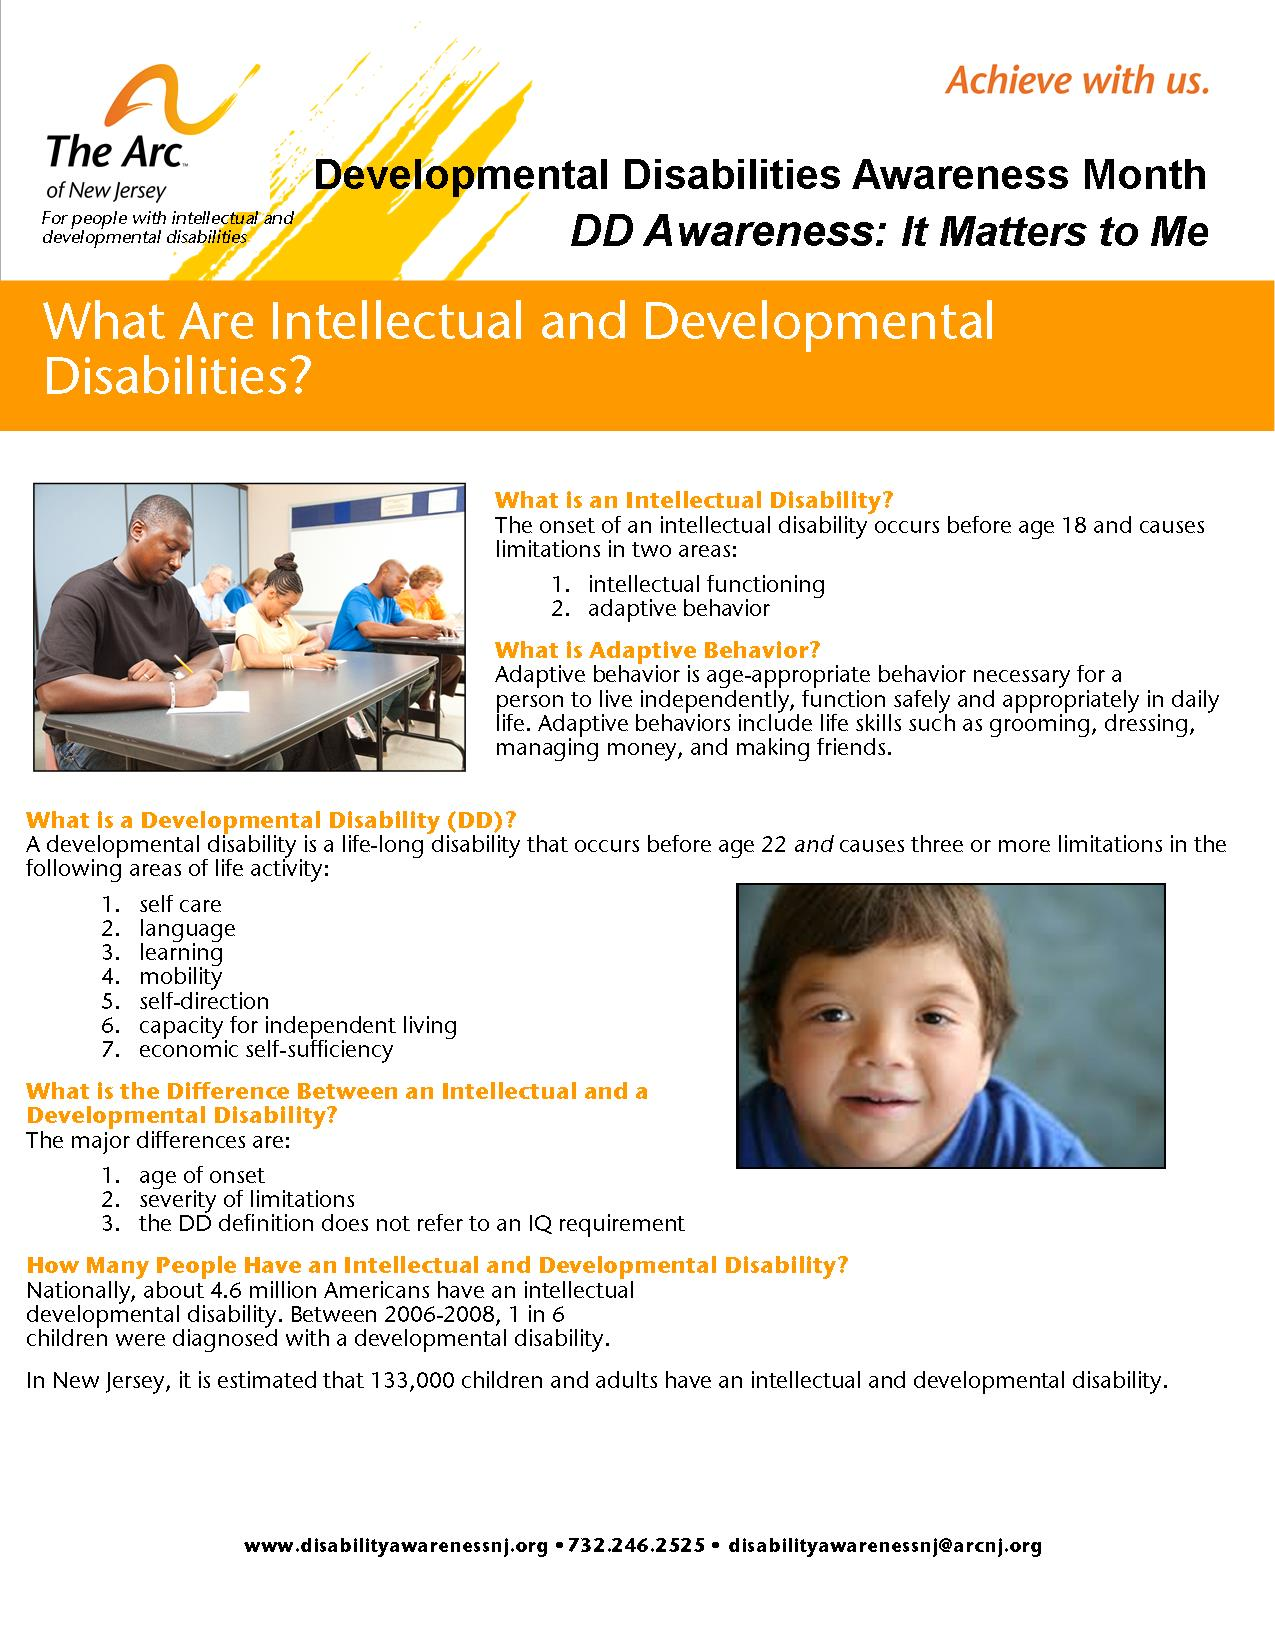 What is an Intellectual or Developmental Disability